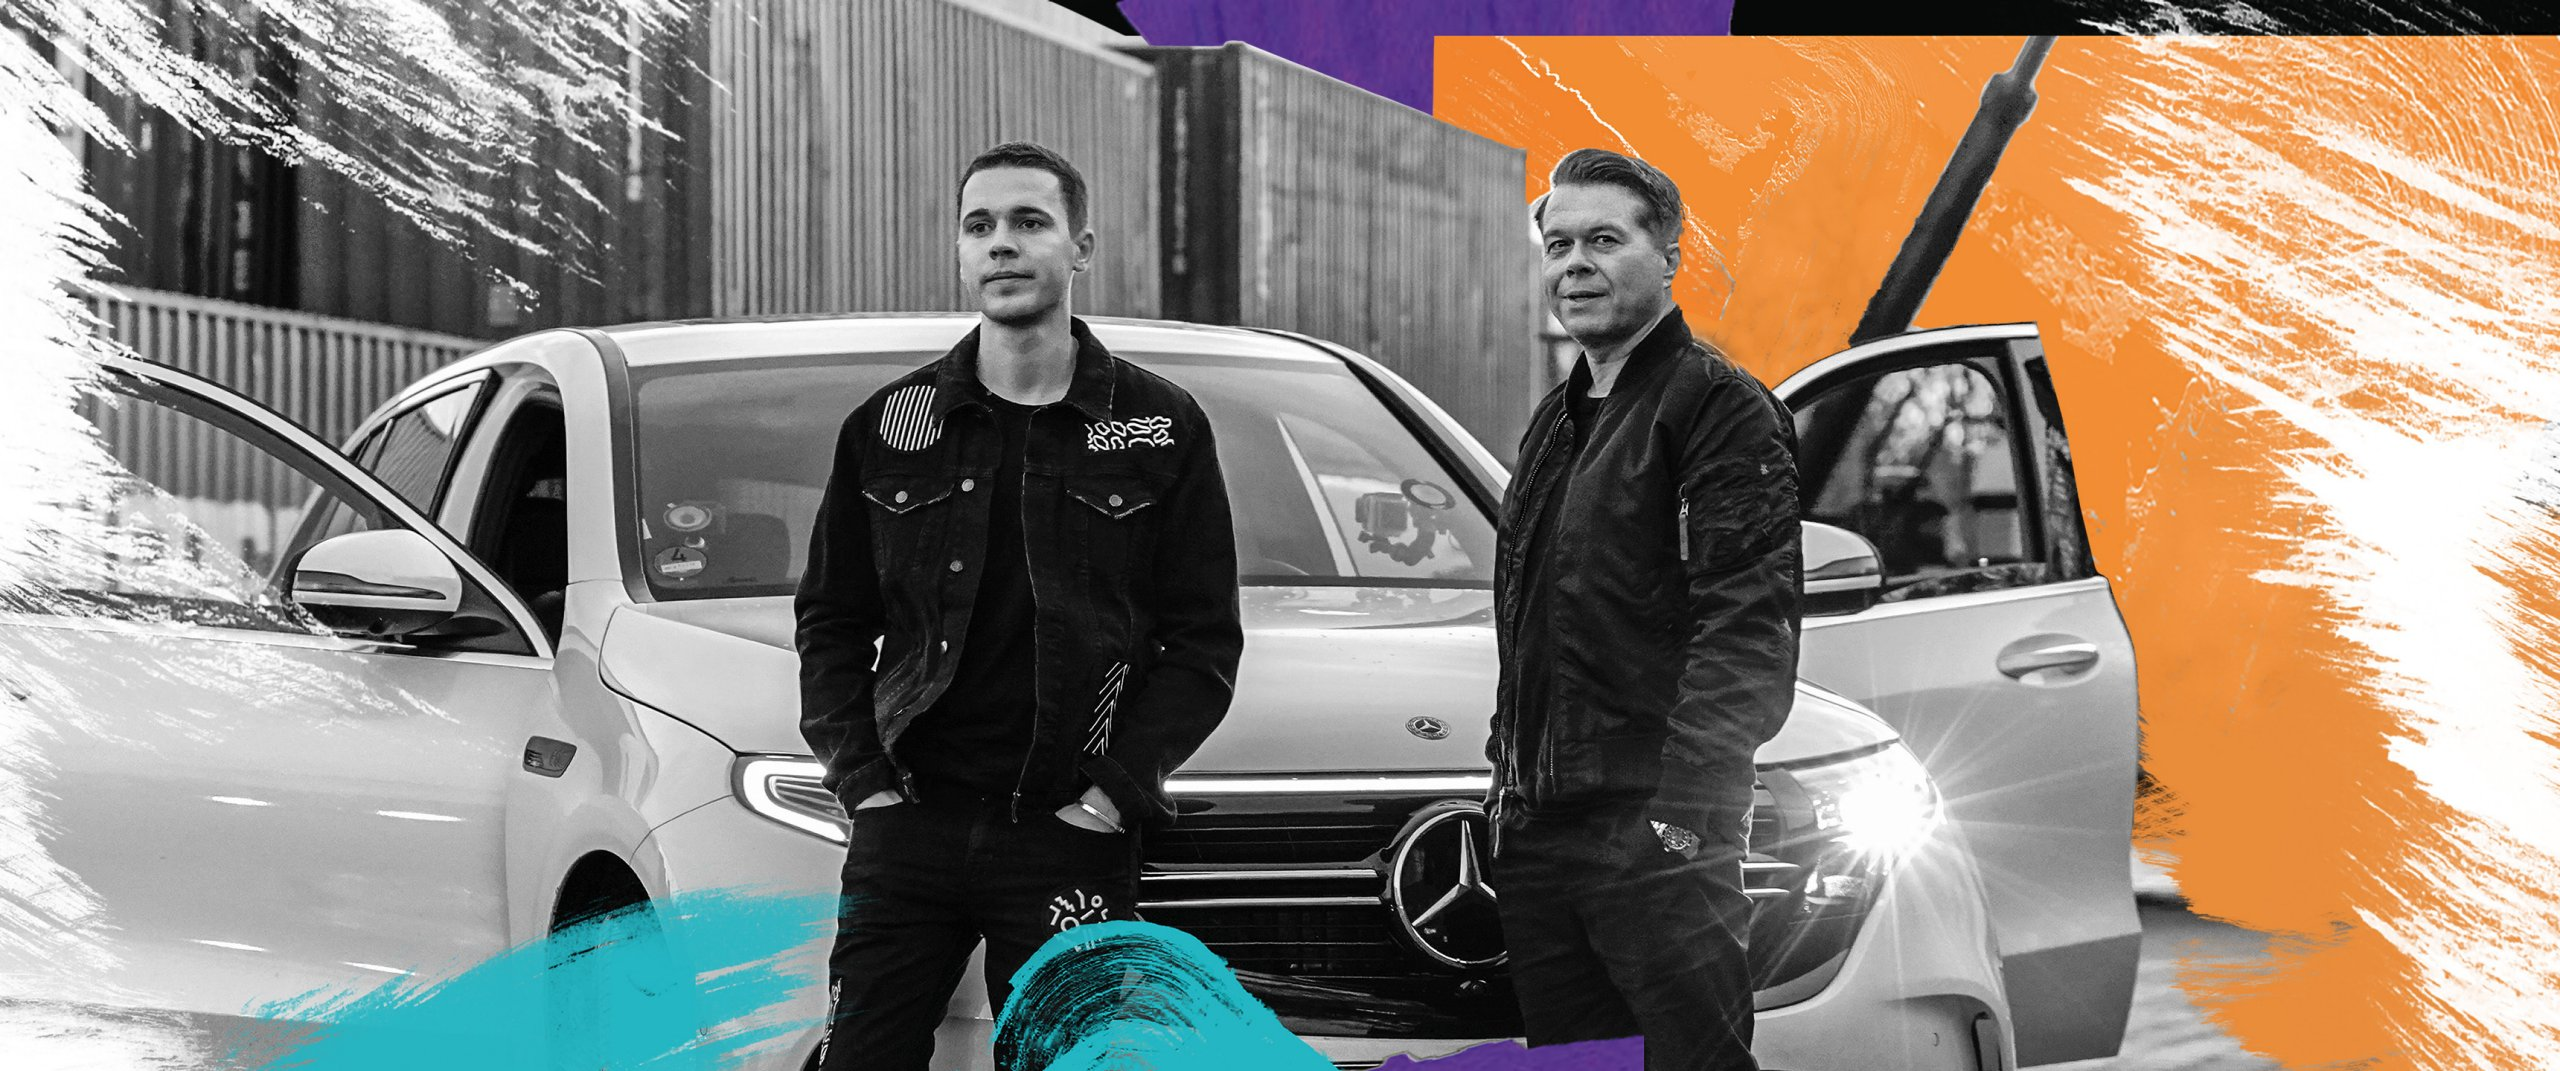 Felix Jaehn and Markus Kavka stand next to the Mercedes-Benz EQC.